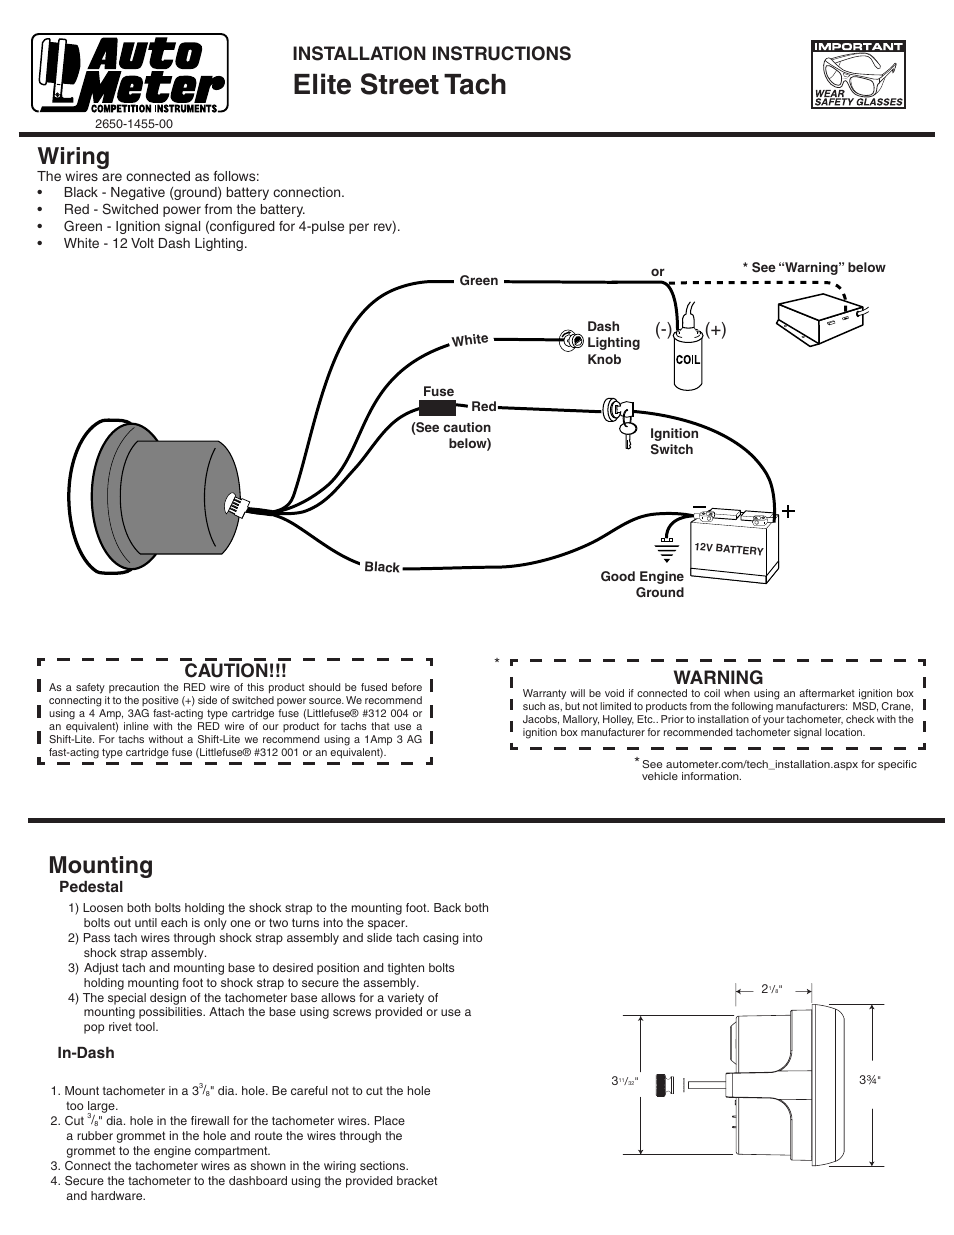 Tach Wire Diagram Another Blog About Wiring Dual Xdm 260 Harness Auto Meter Memory 1975 Mustang Tachometer Mooneyes Pro